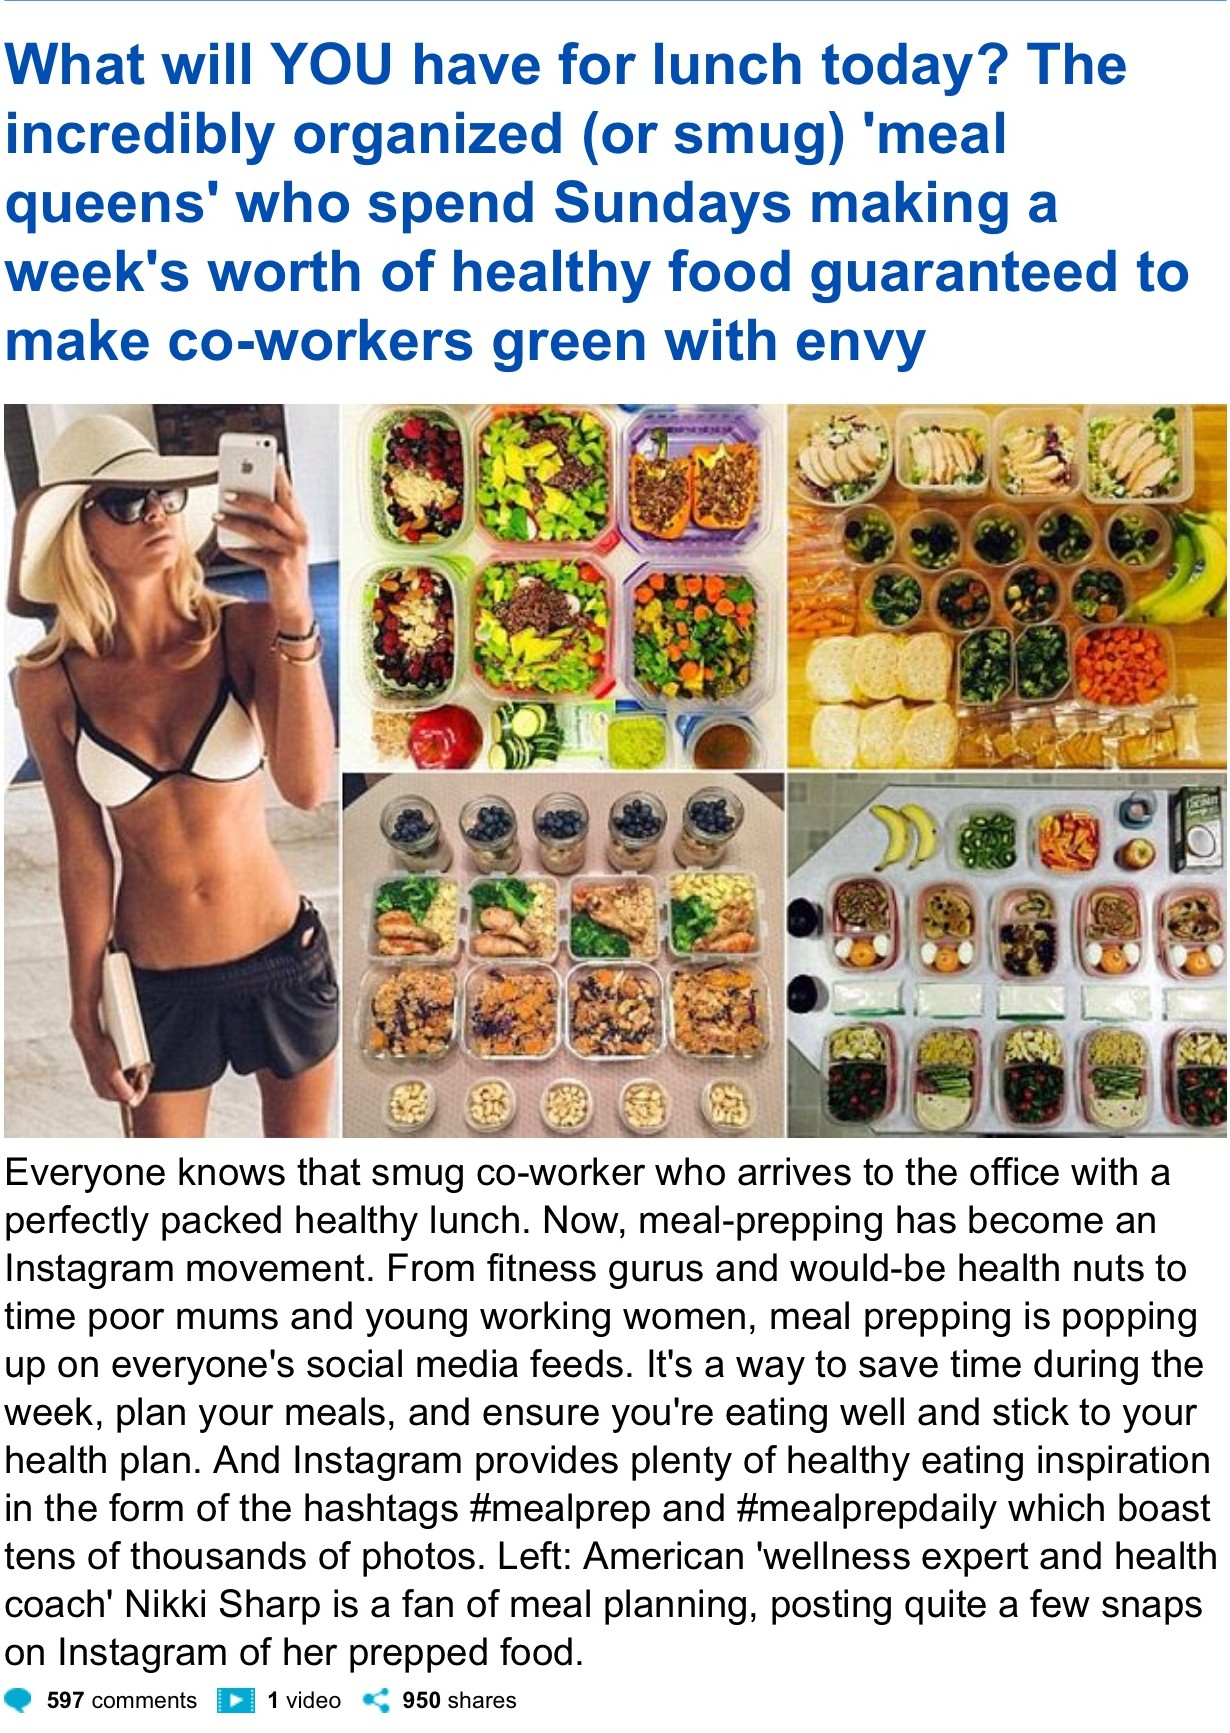 nikki-sharp-daily-mail-meal-prep